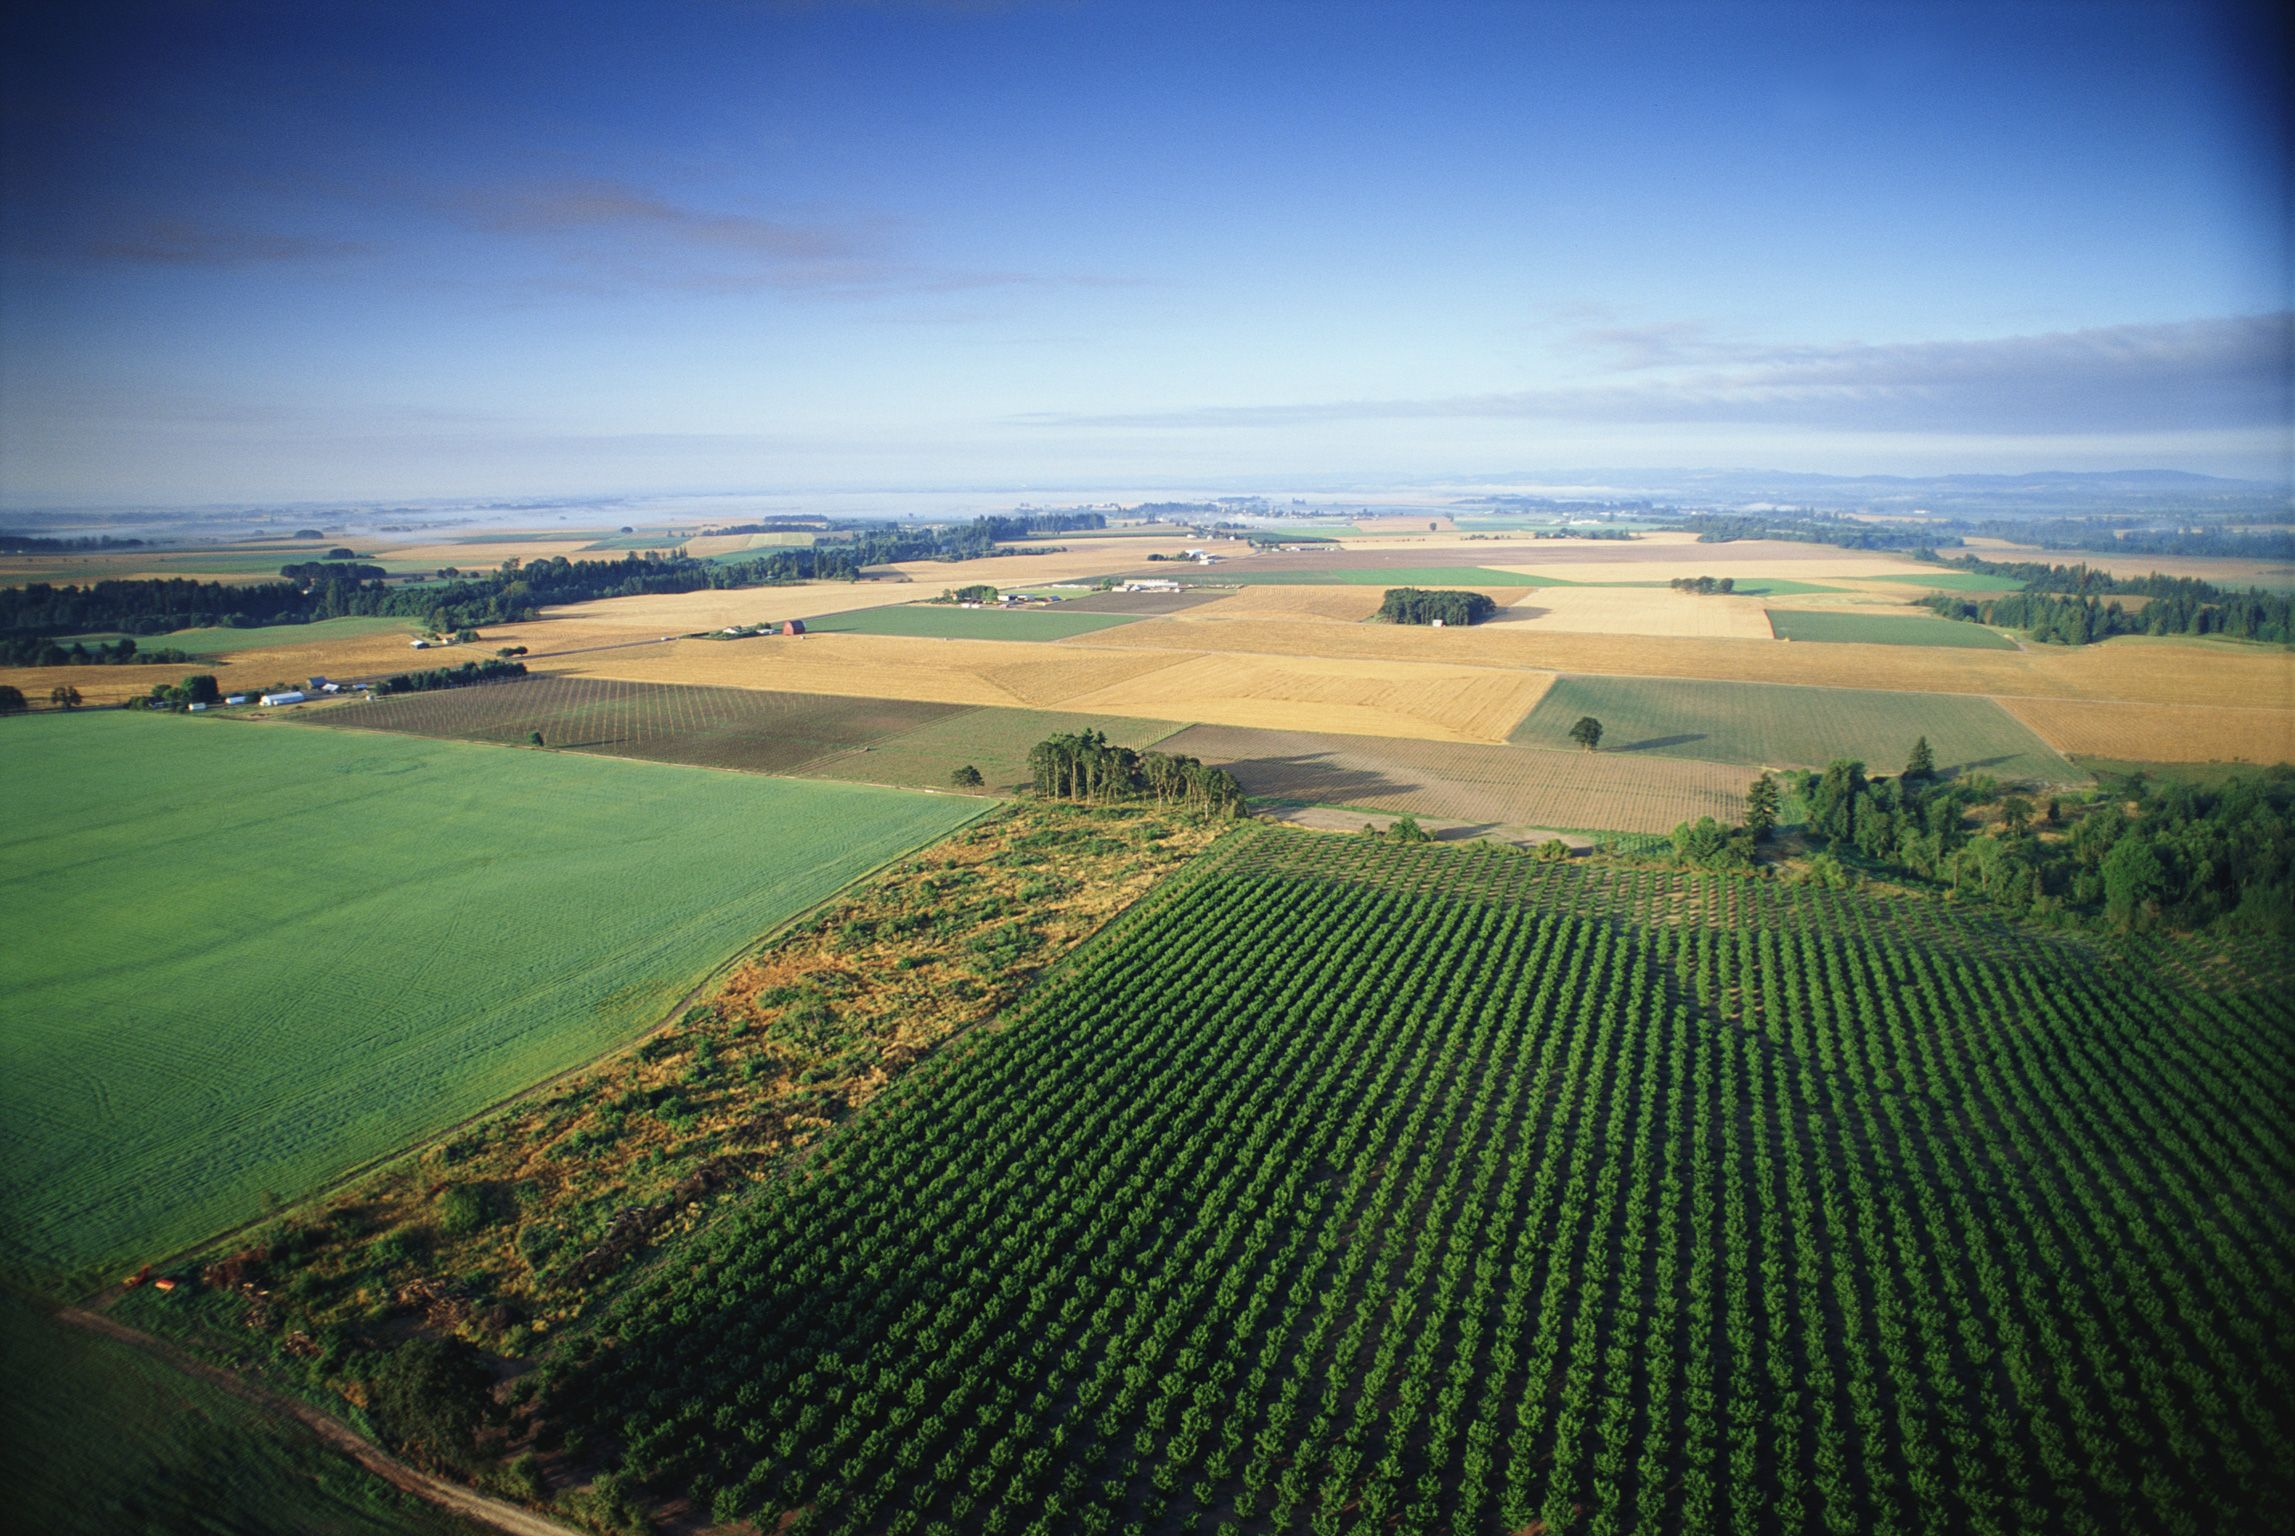 Record number of farmers, ranchers certified under Farm